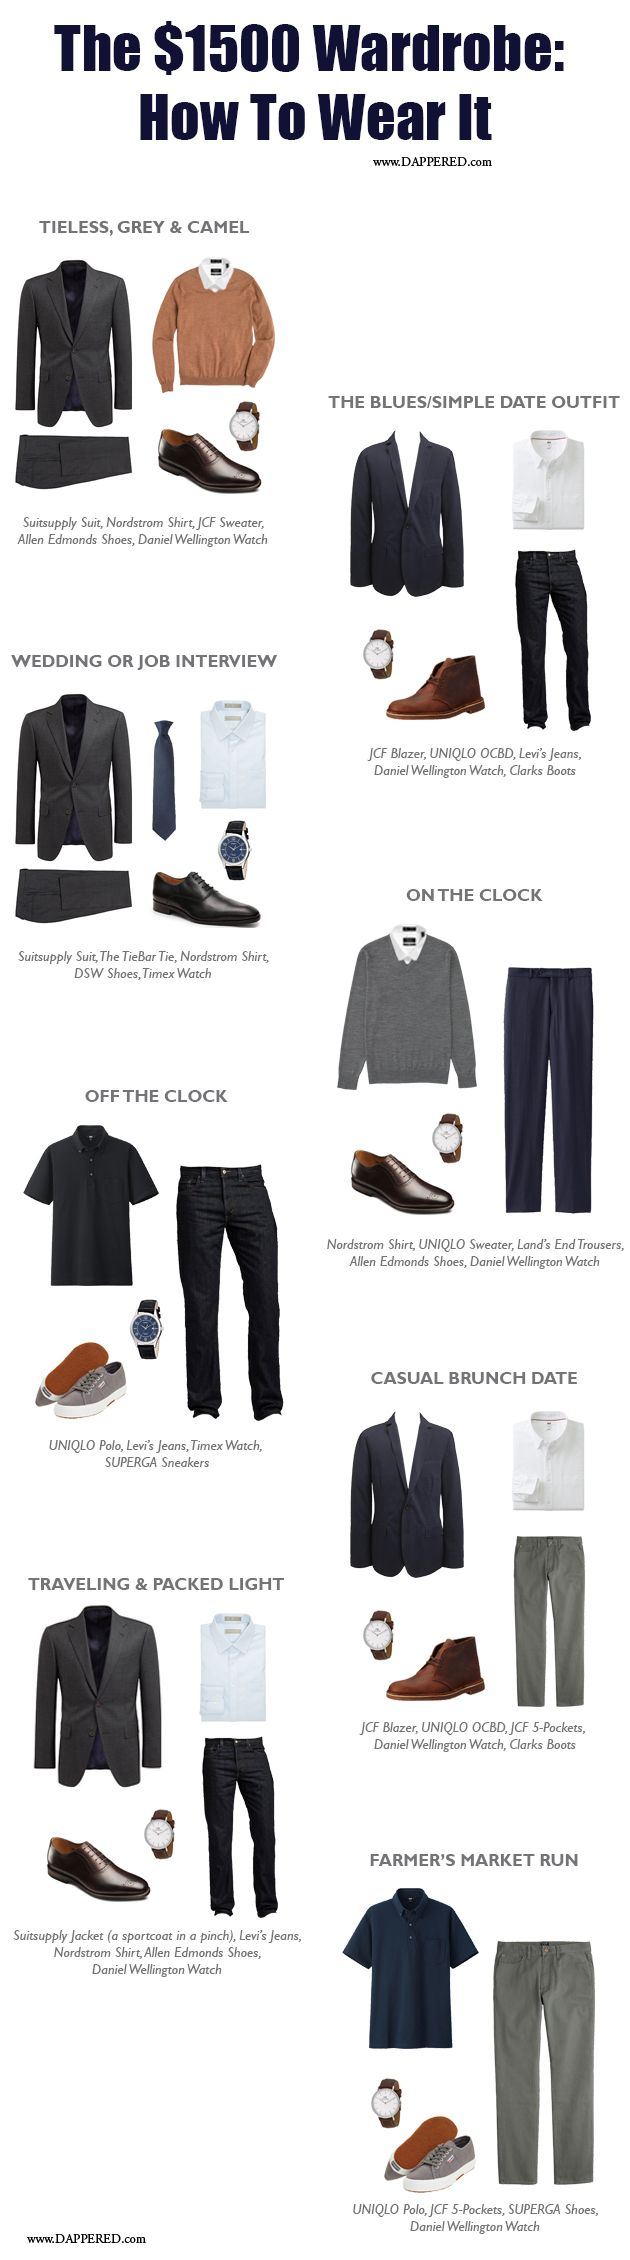 How to Wear it: The $1500 Wardrobe | Dappered.com